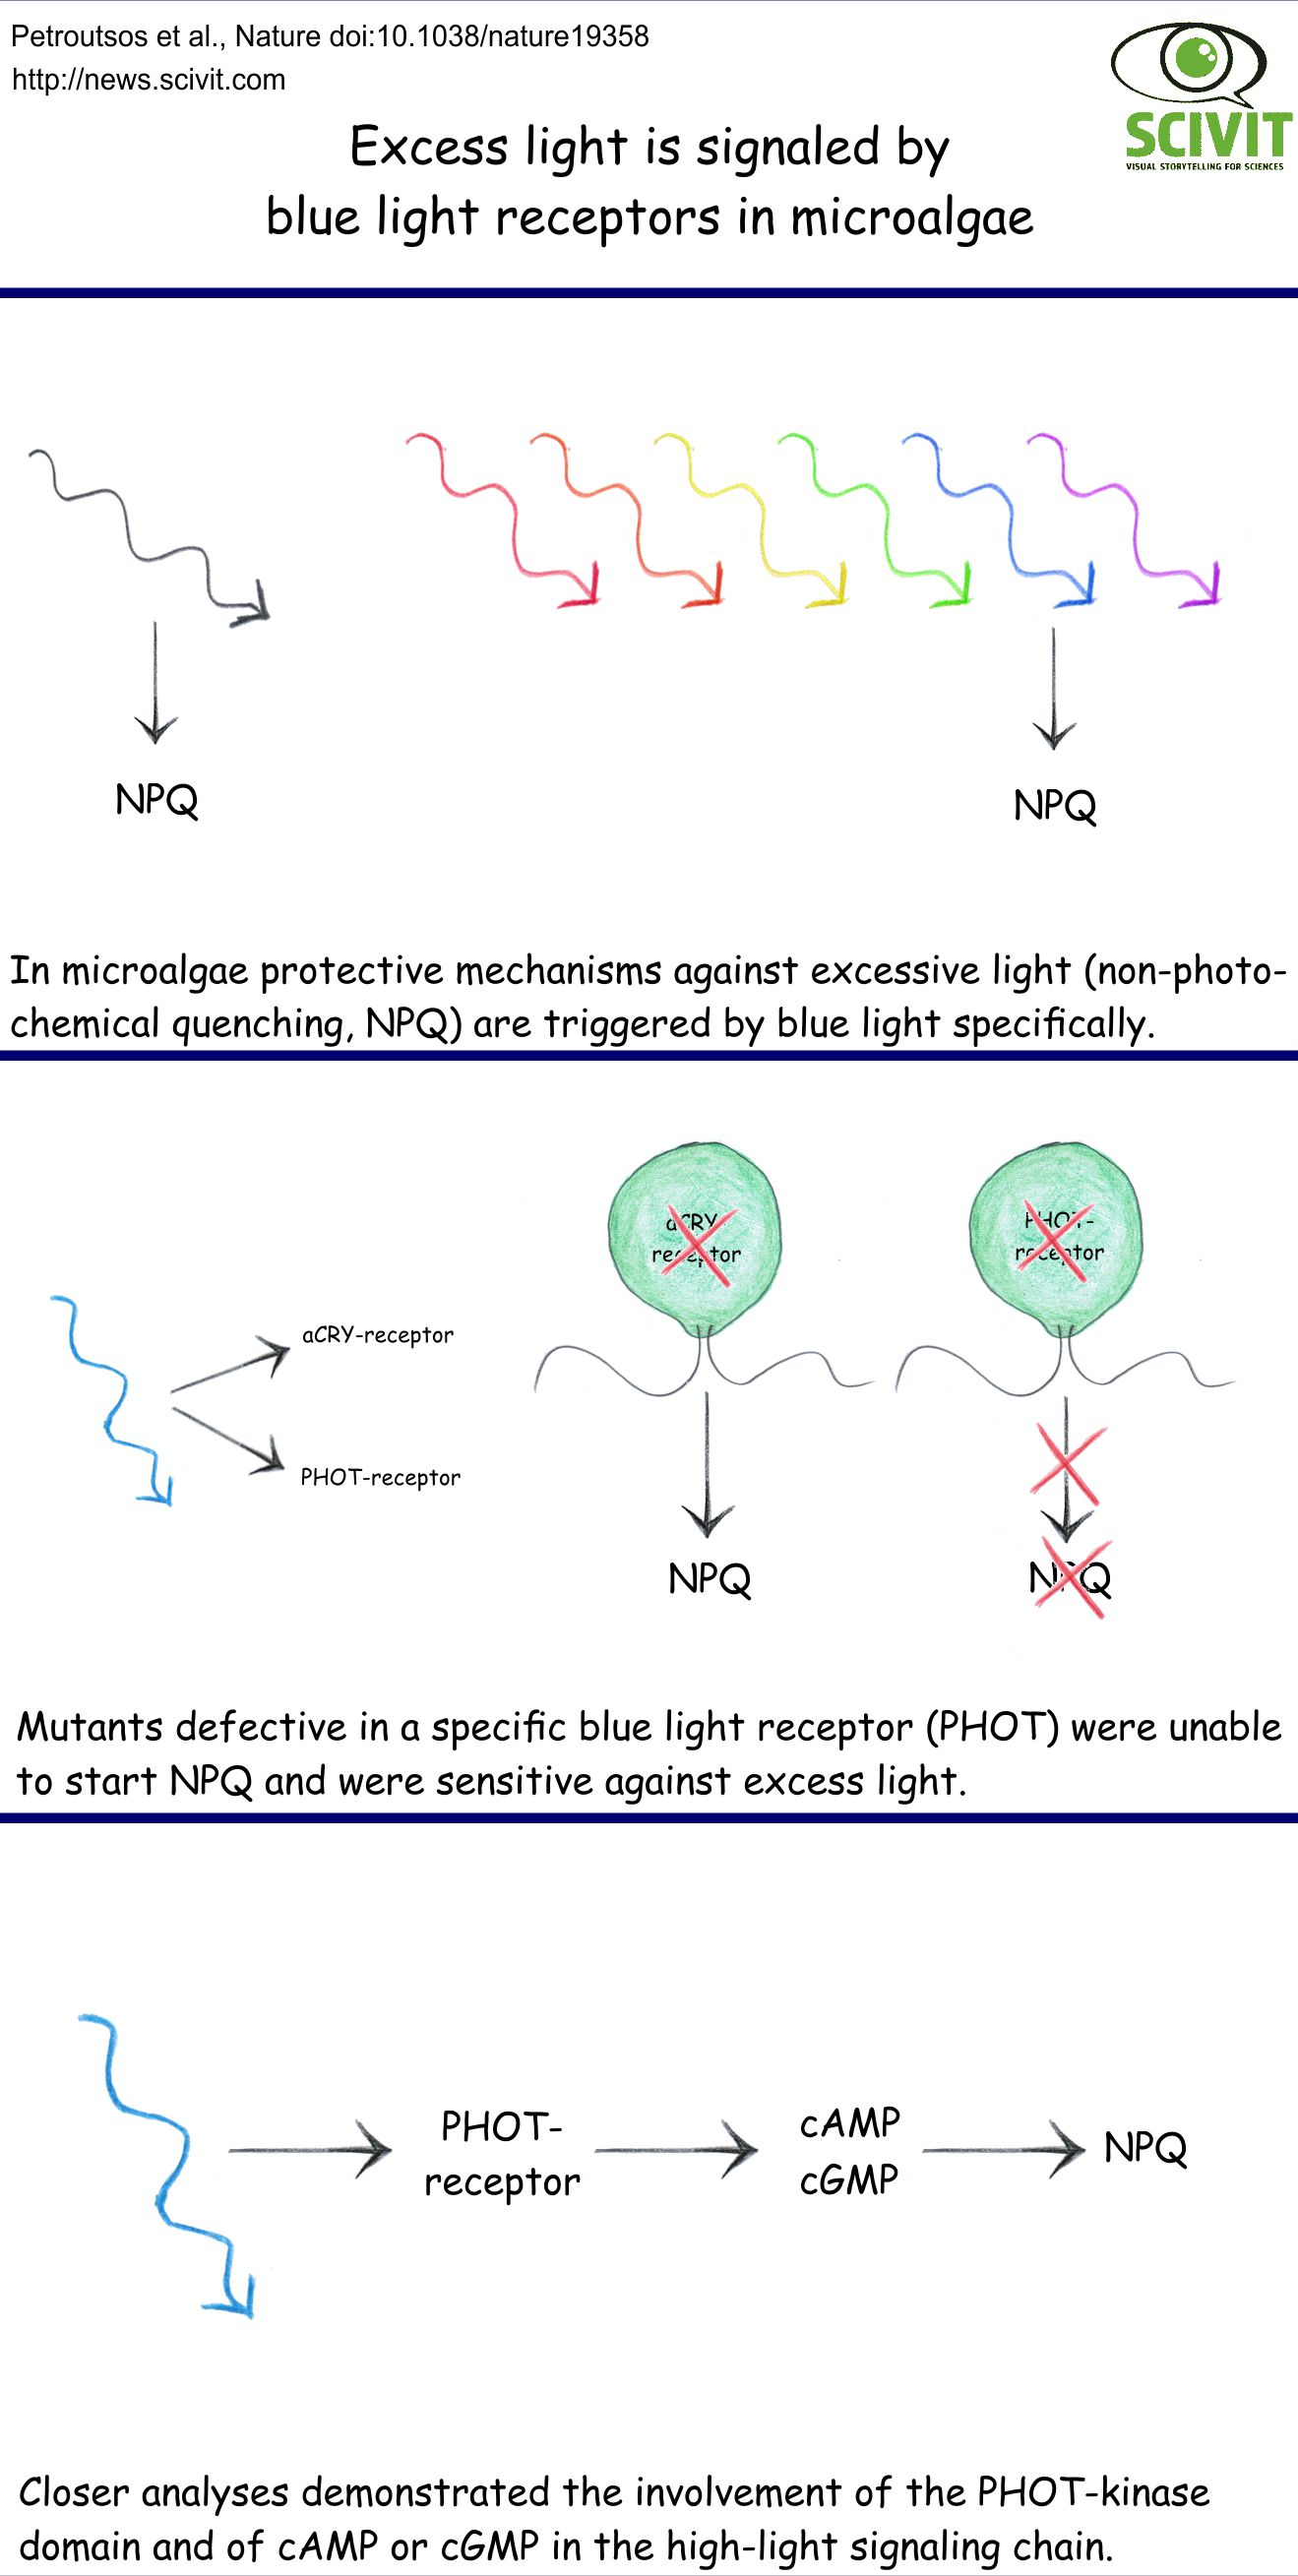 Excess light is signaled by blue light receptors in microalgae